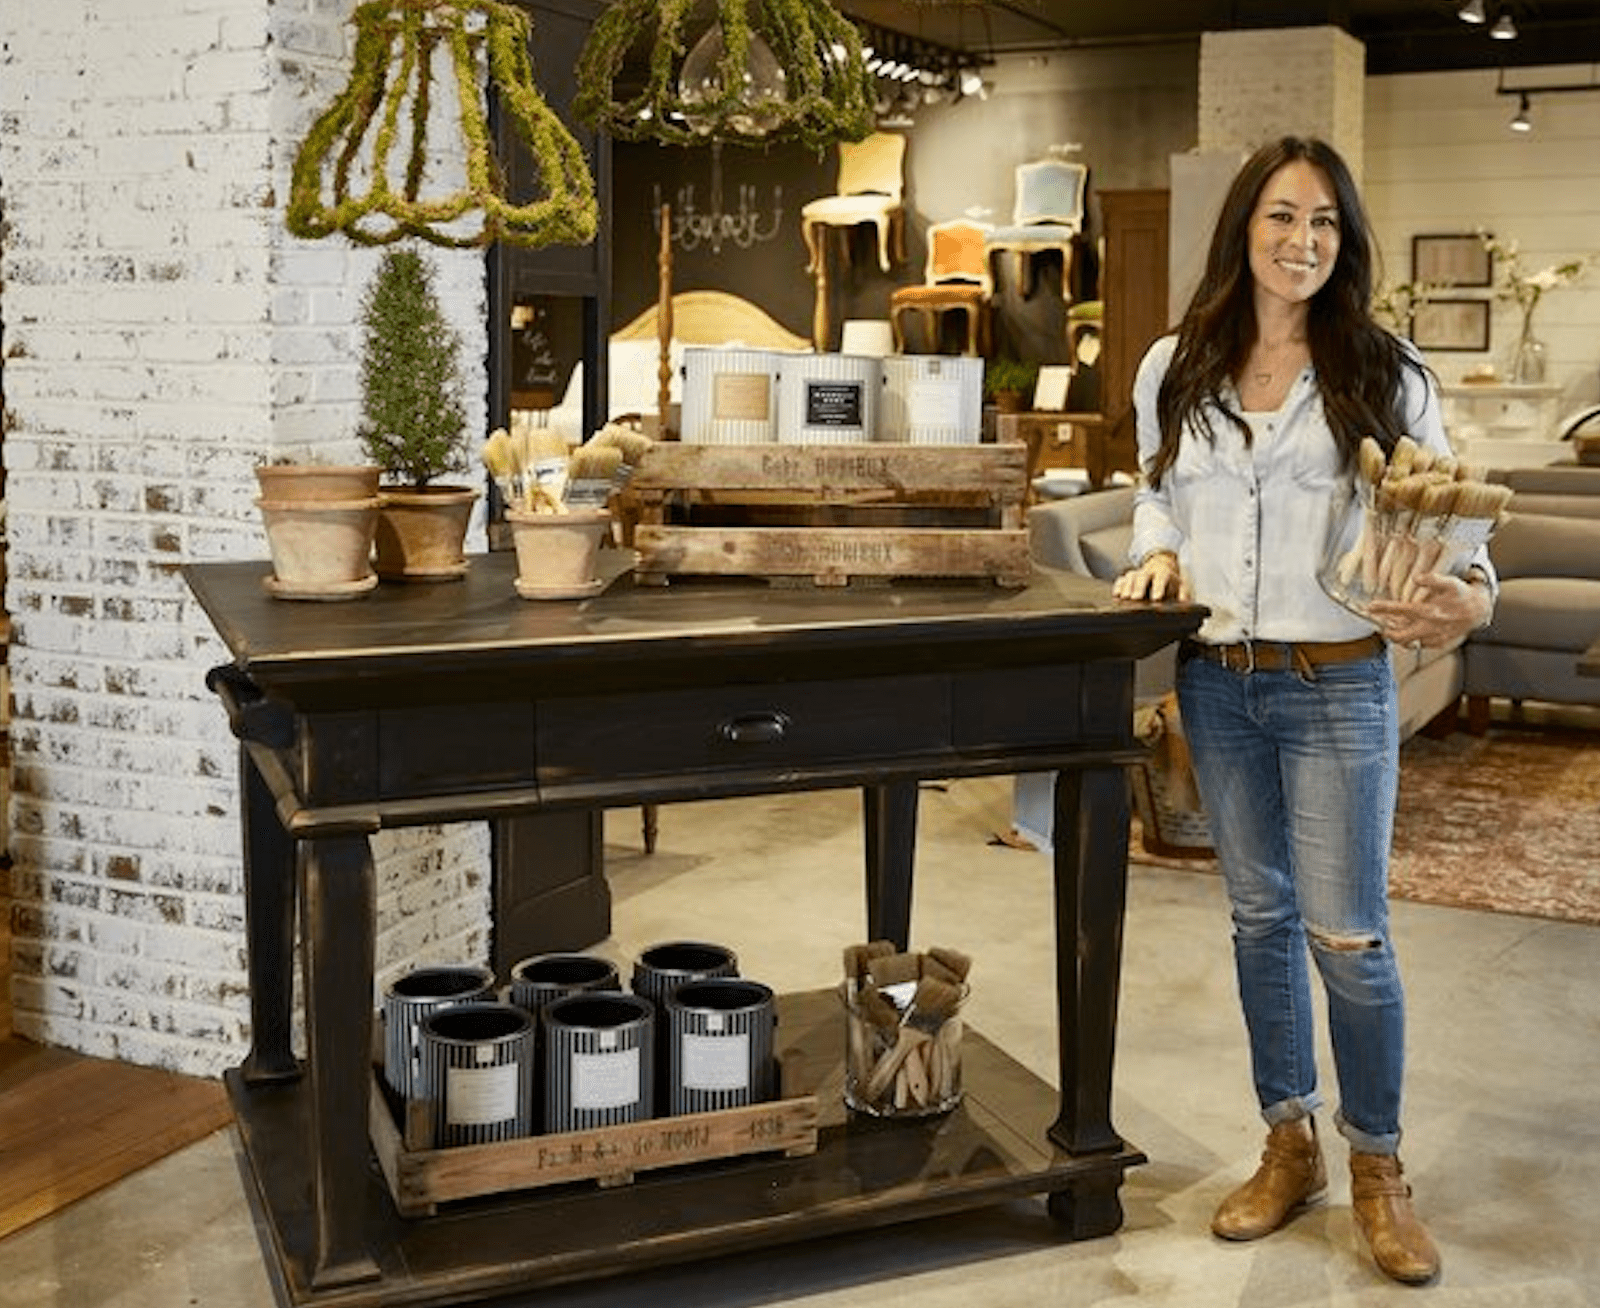 See joanna gaines 39 stunning paint colors - Joanna gaines interior paint colors ...